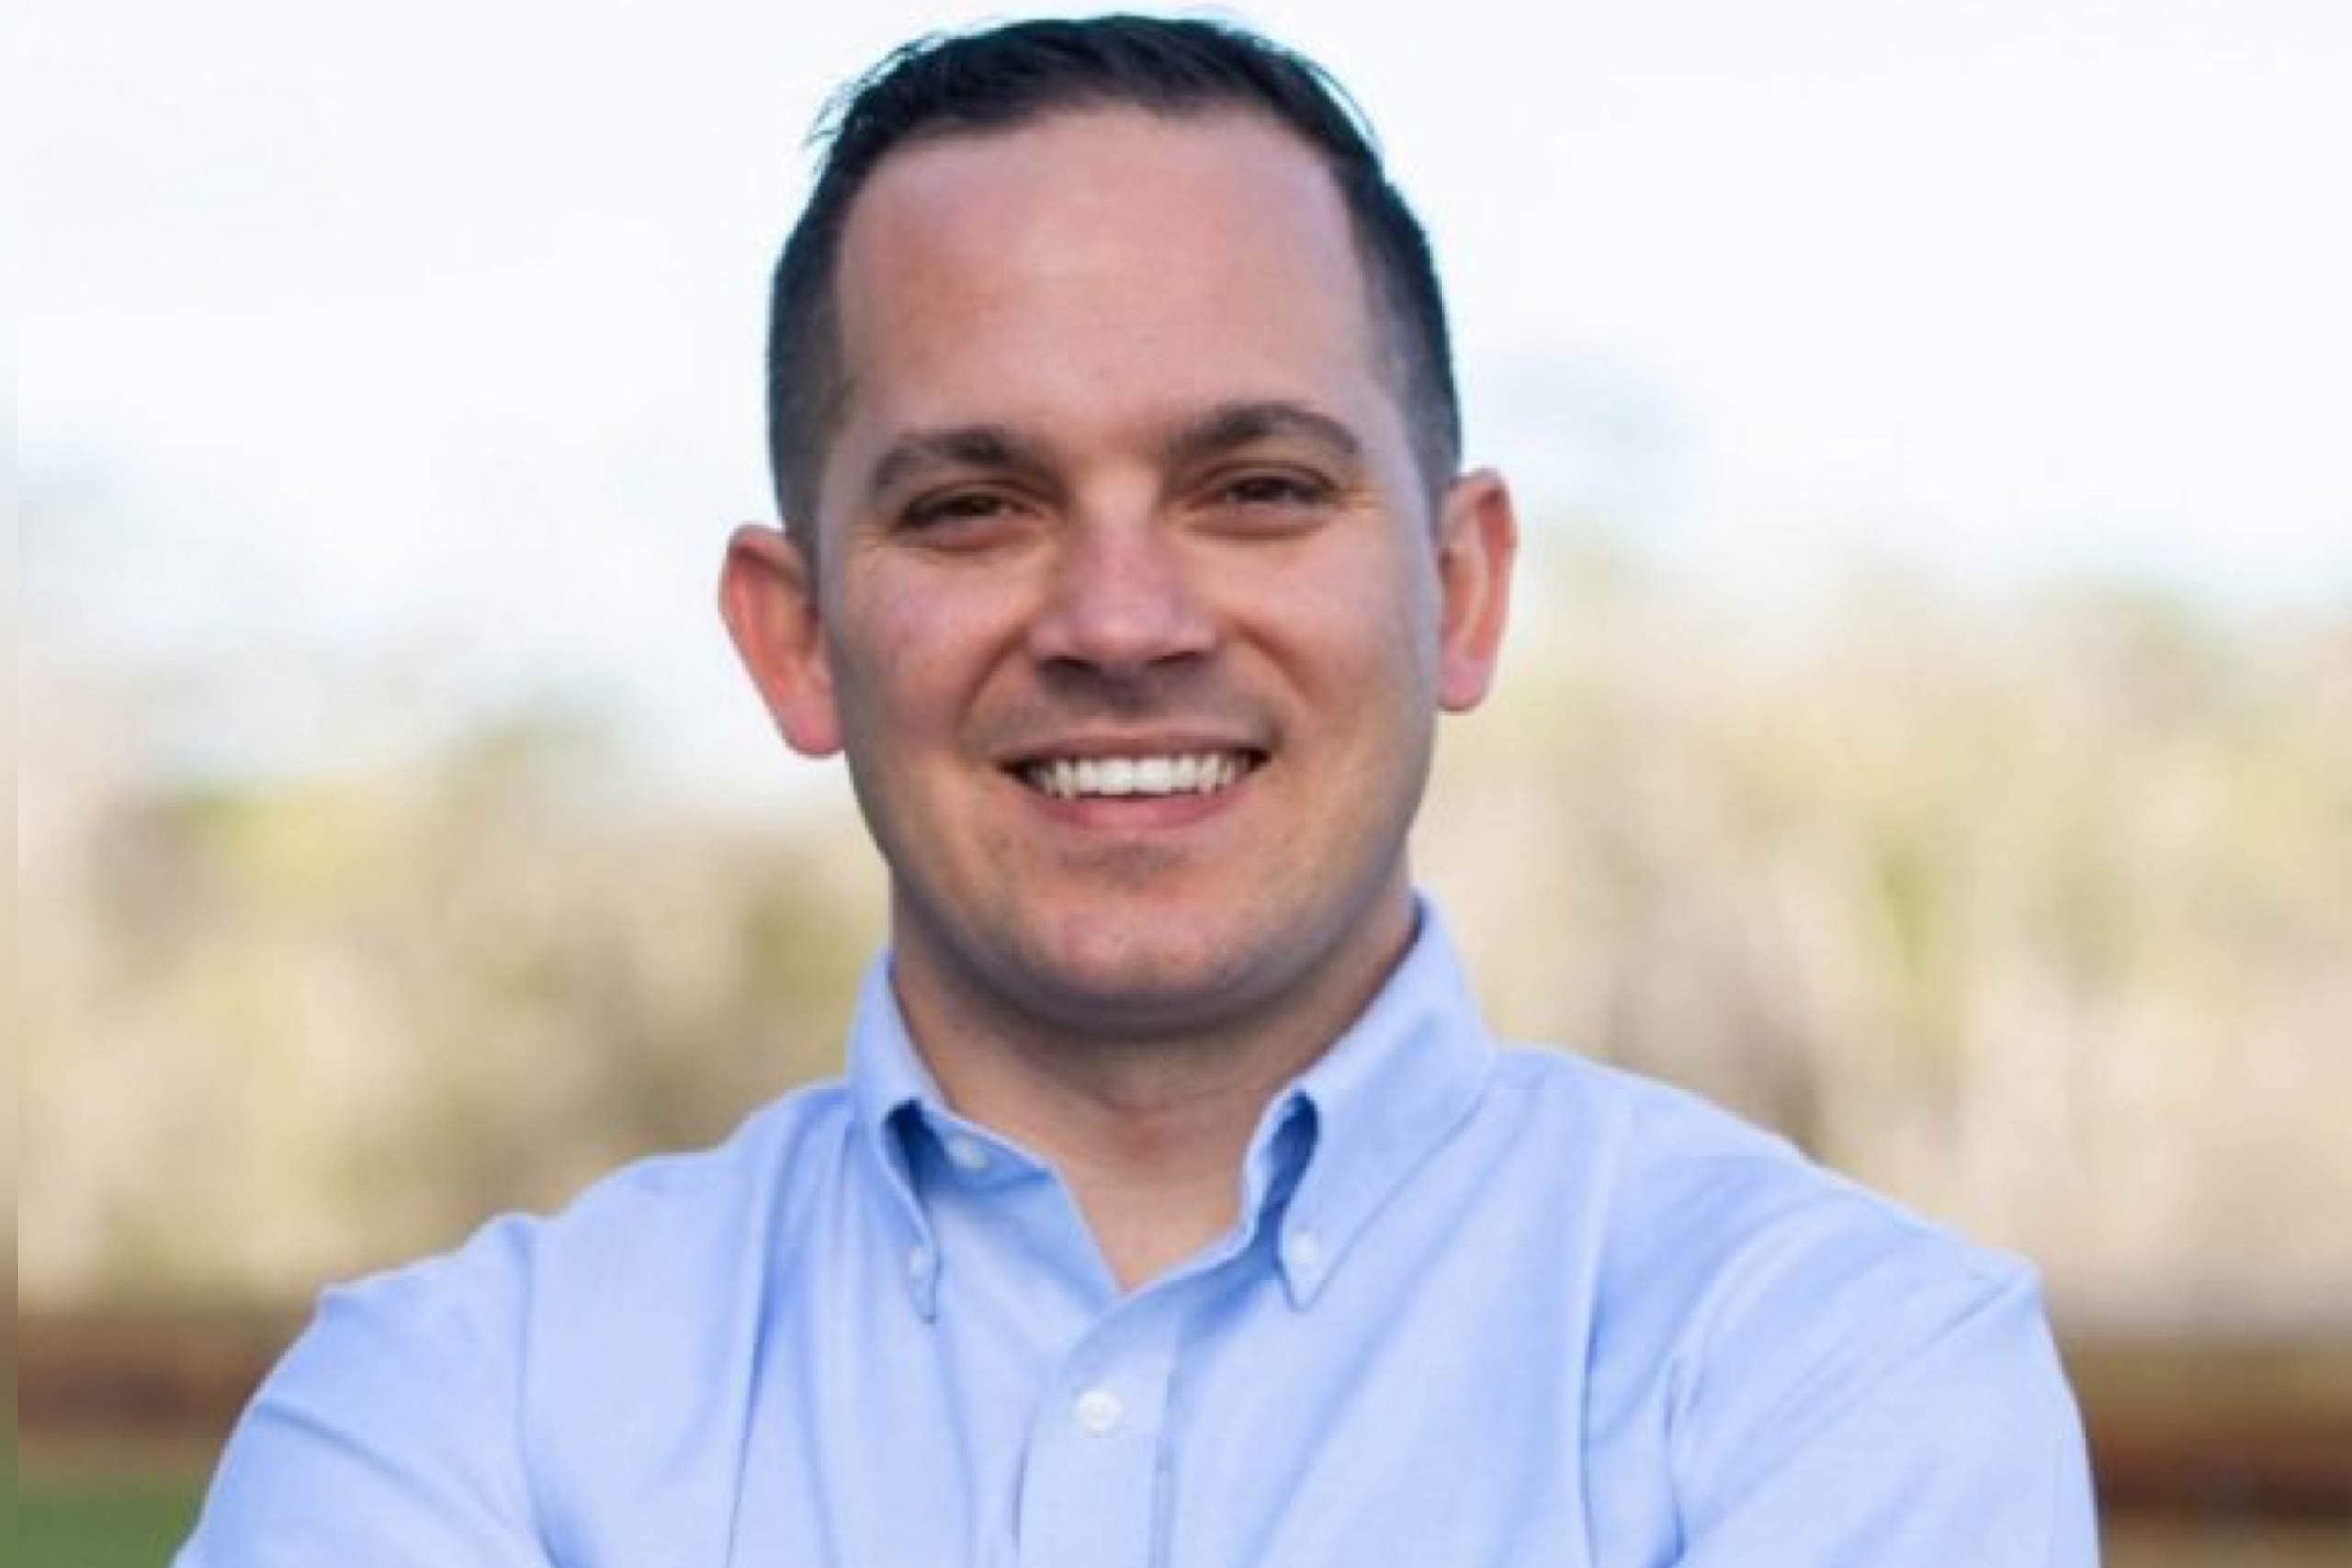 BREAKING: Now Florida – State Representative Sabatini Calls for a Forensic Audit of the Five Largest Counties in the State